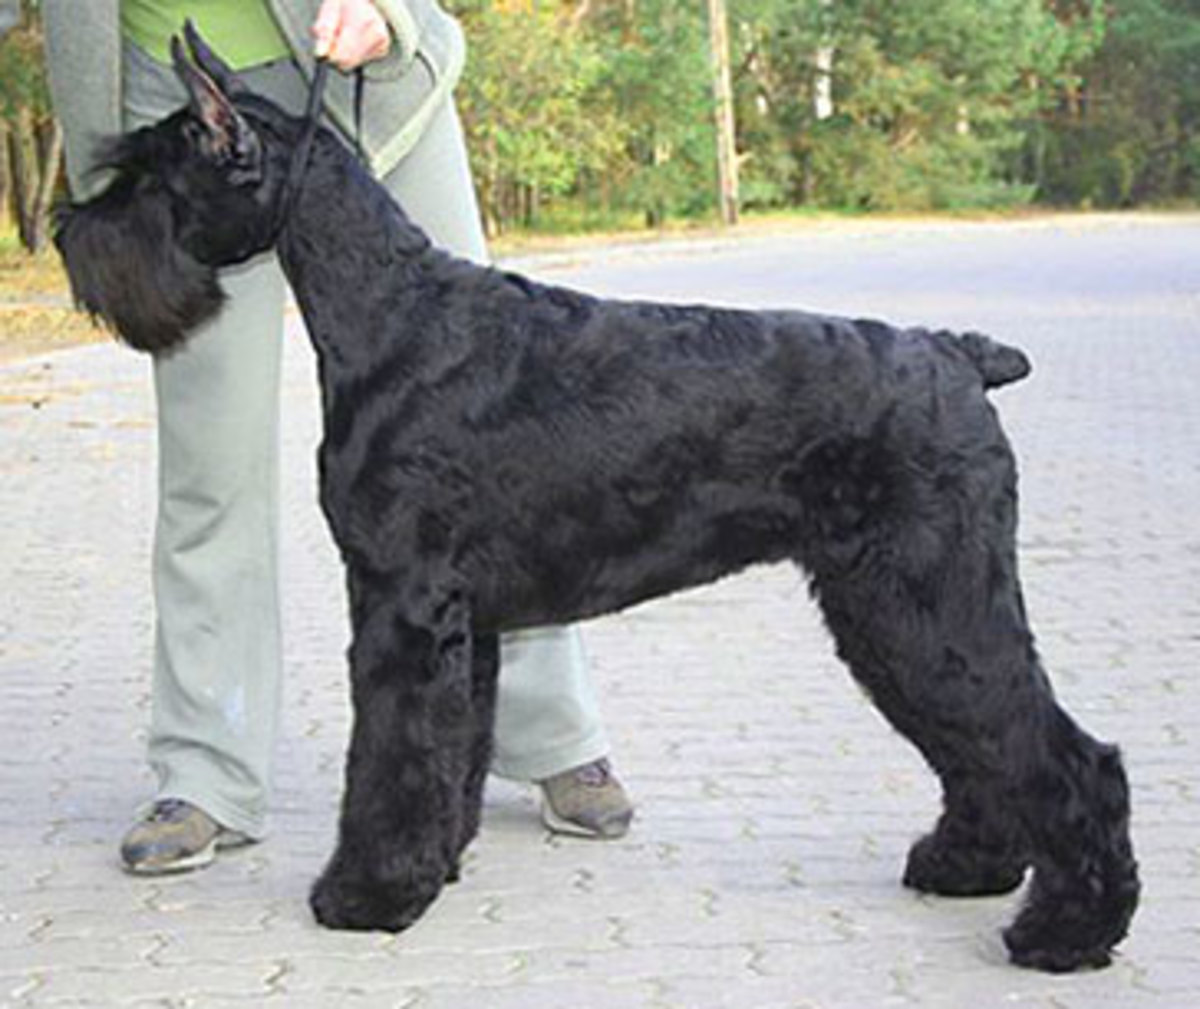 An adult Giant Schnauzer.